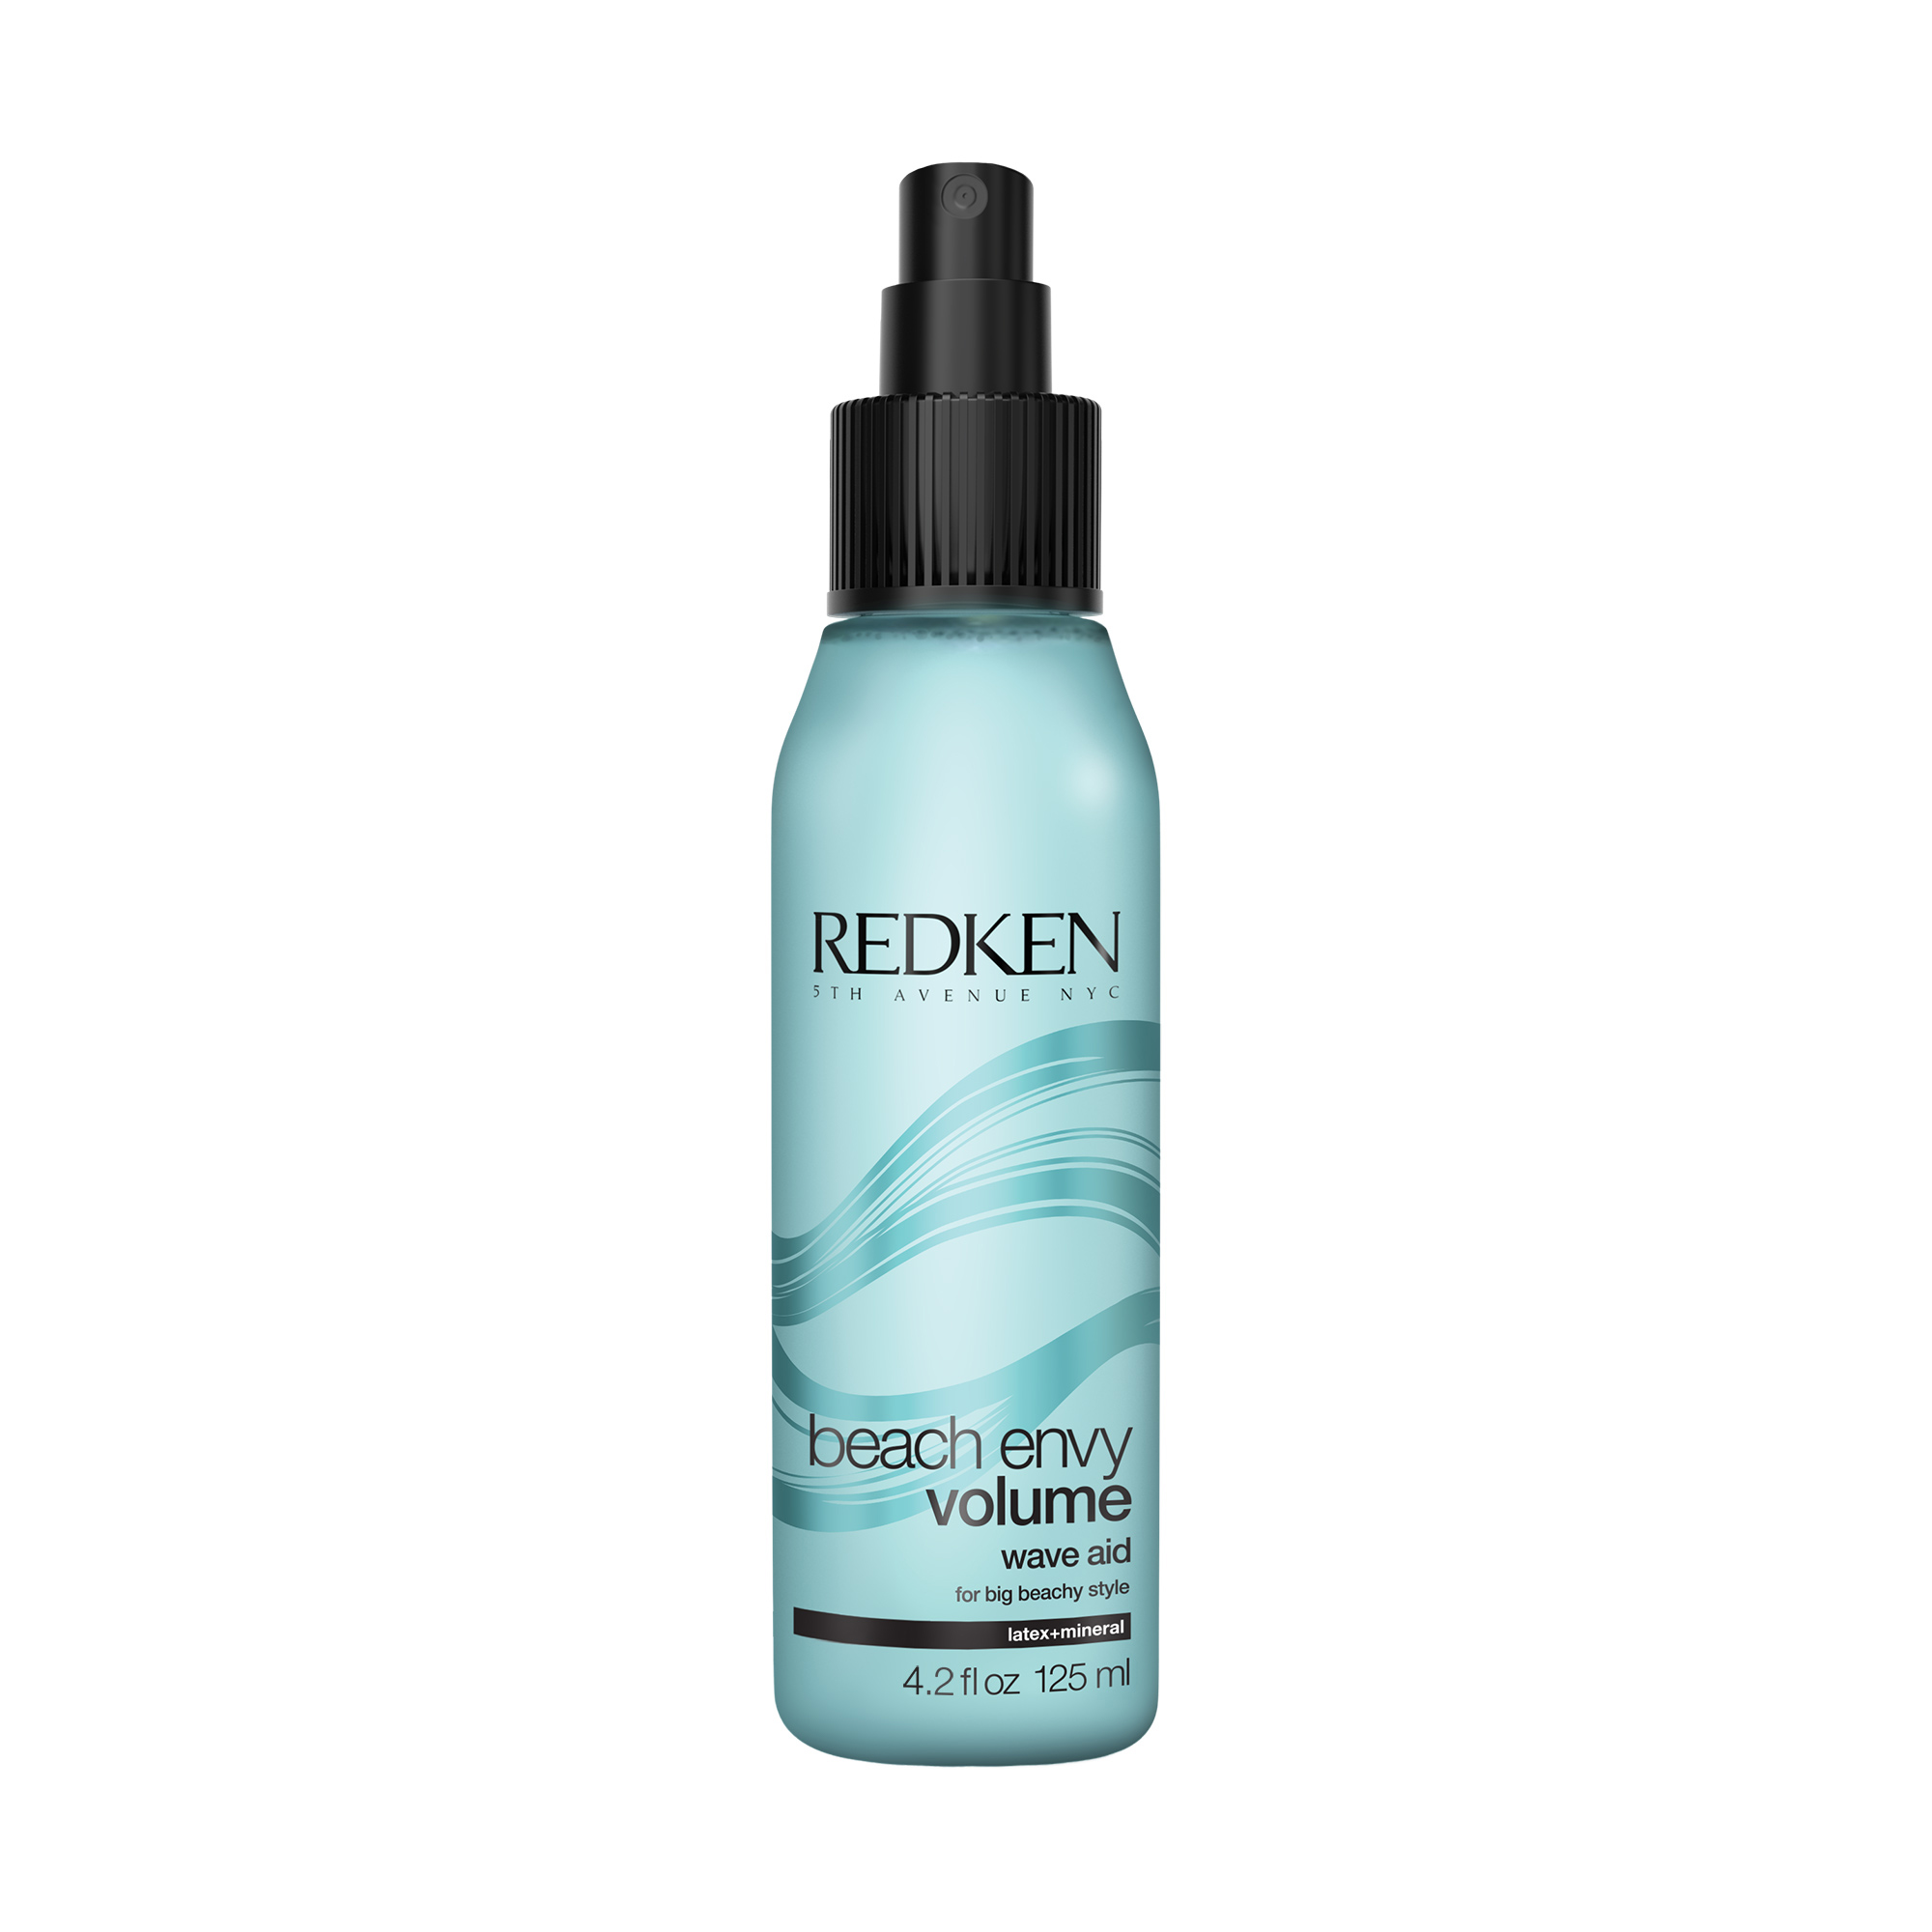 Beach Envy Volume Wave Aid 125 ml